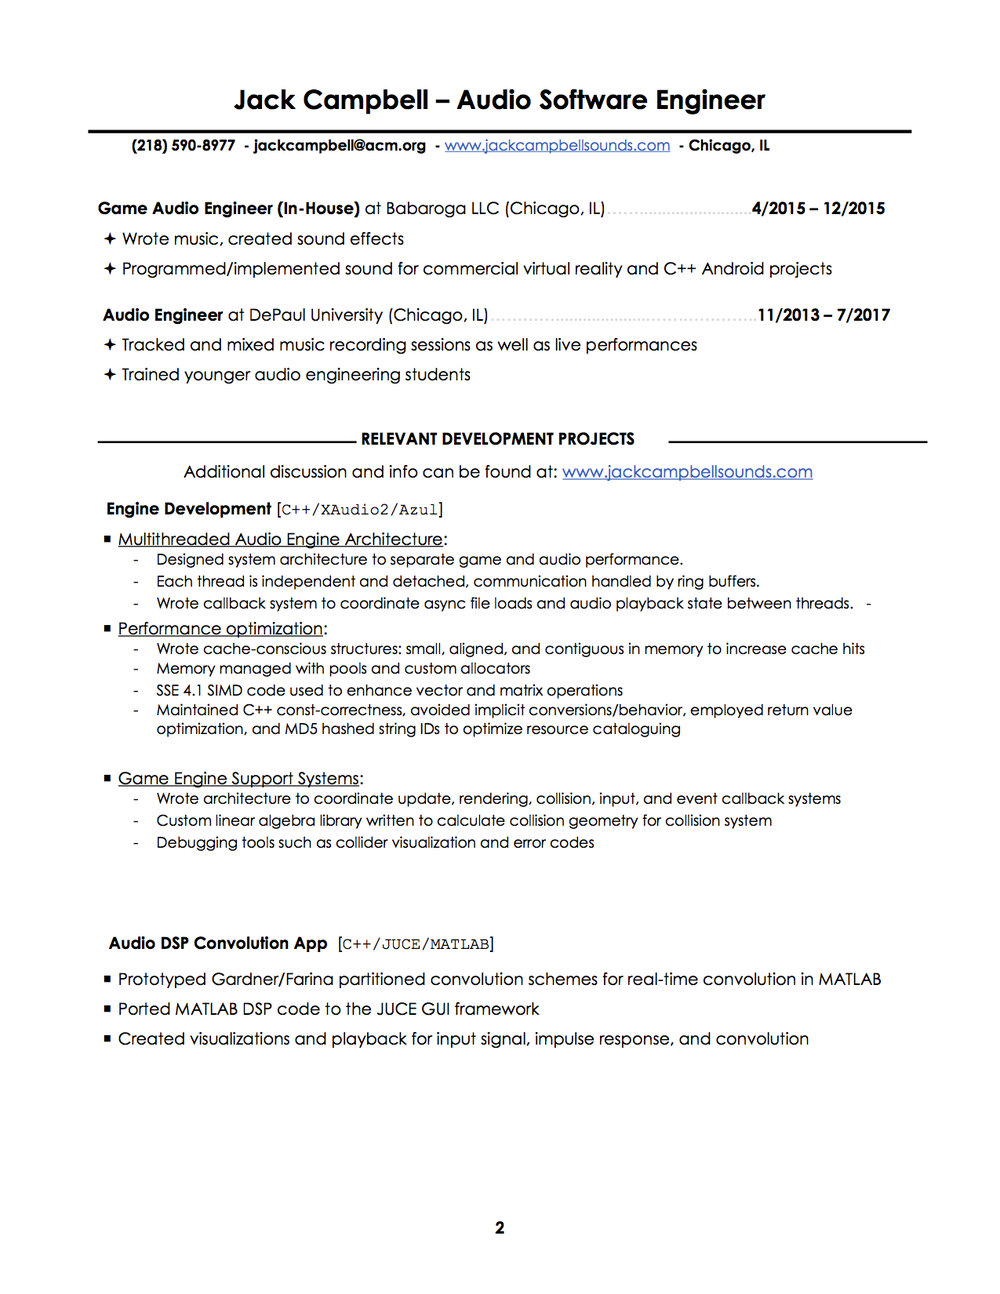 jcampbell_resume_audio_engineer (2).jpg